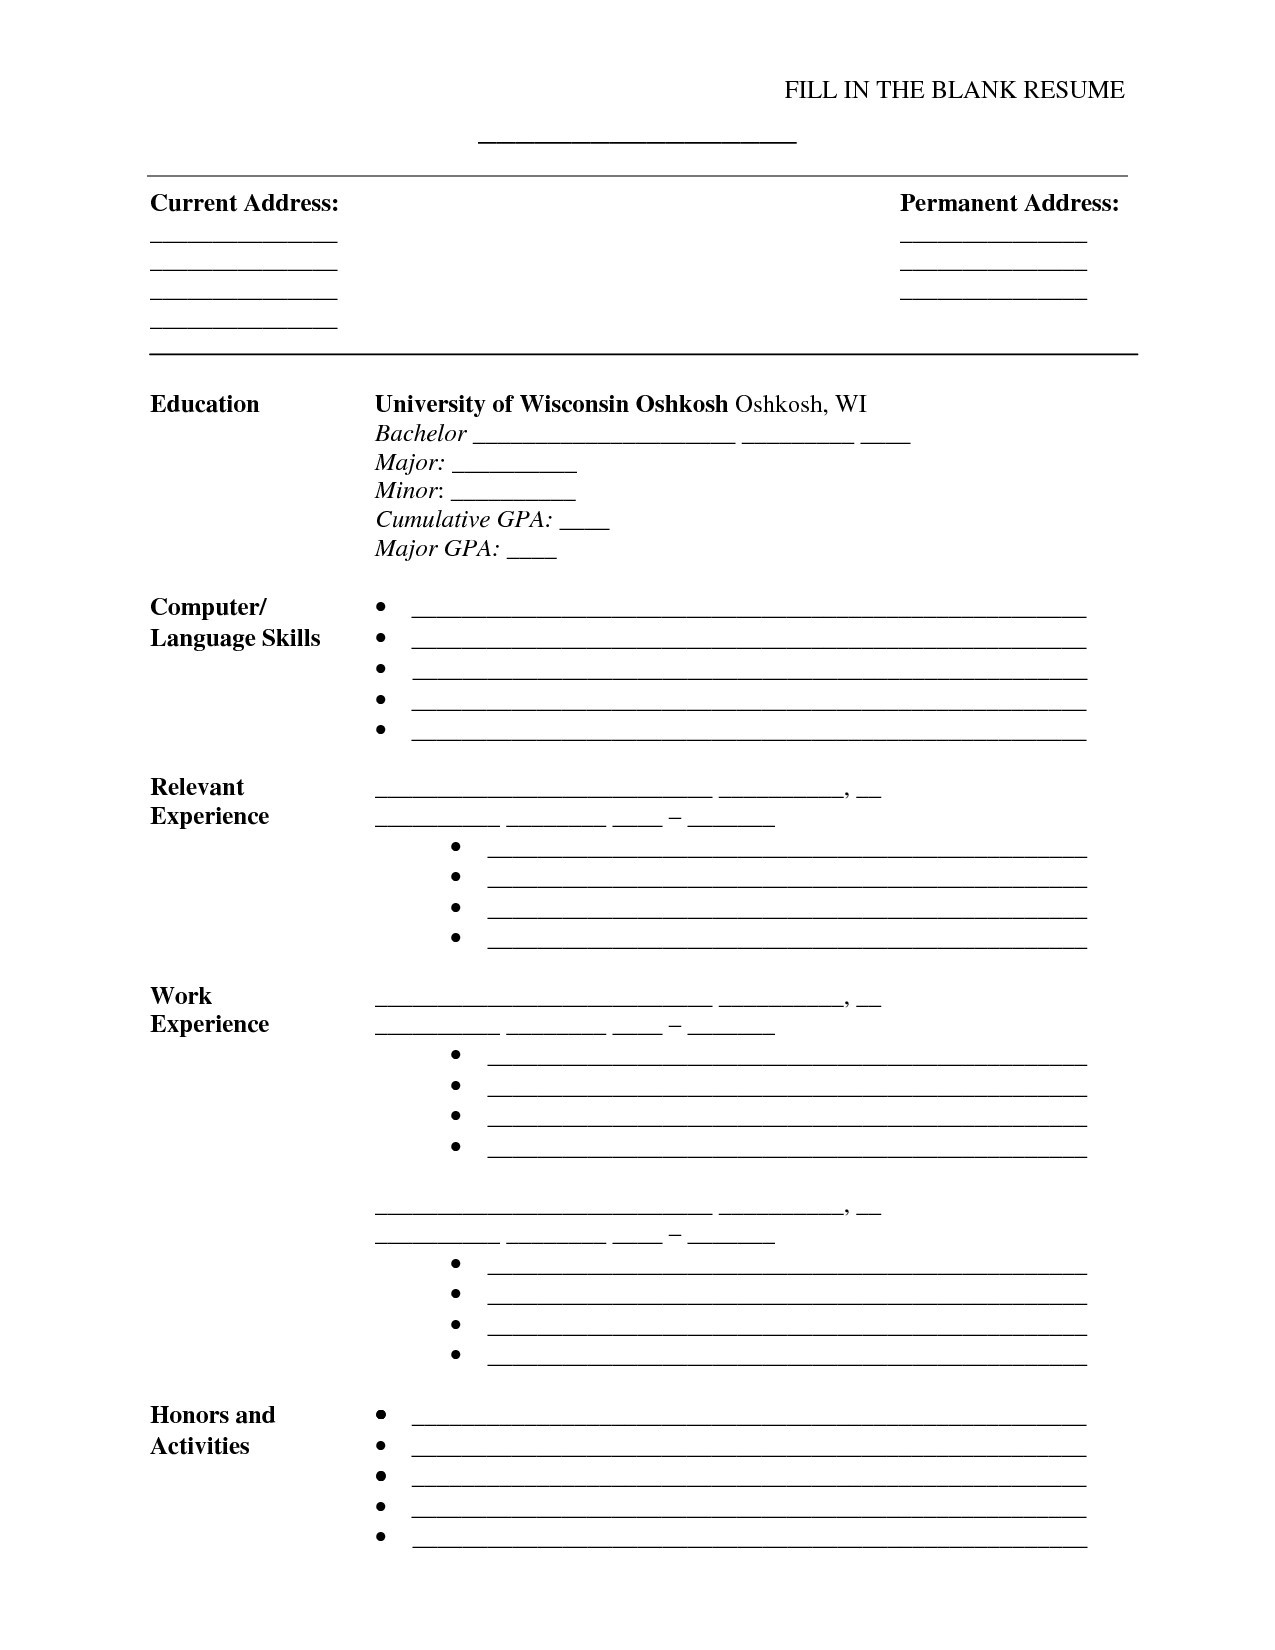 Free Printable Fill In the Blank Resume Templates - Resume Templates Blank